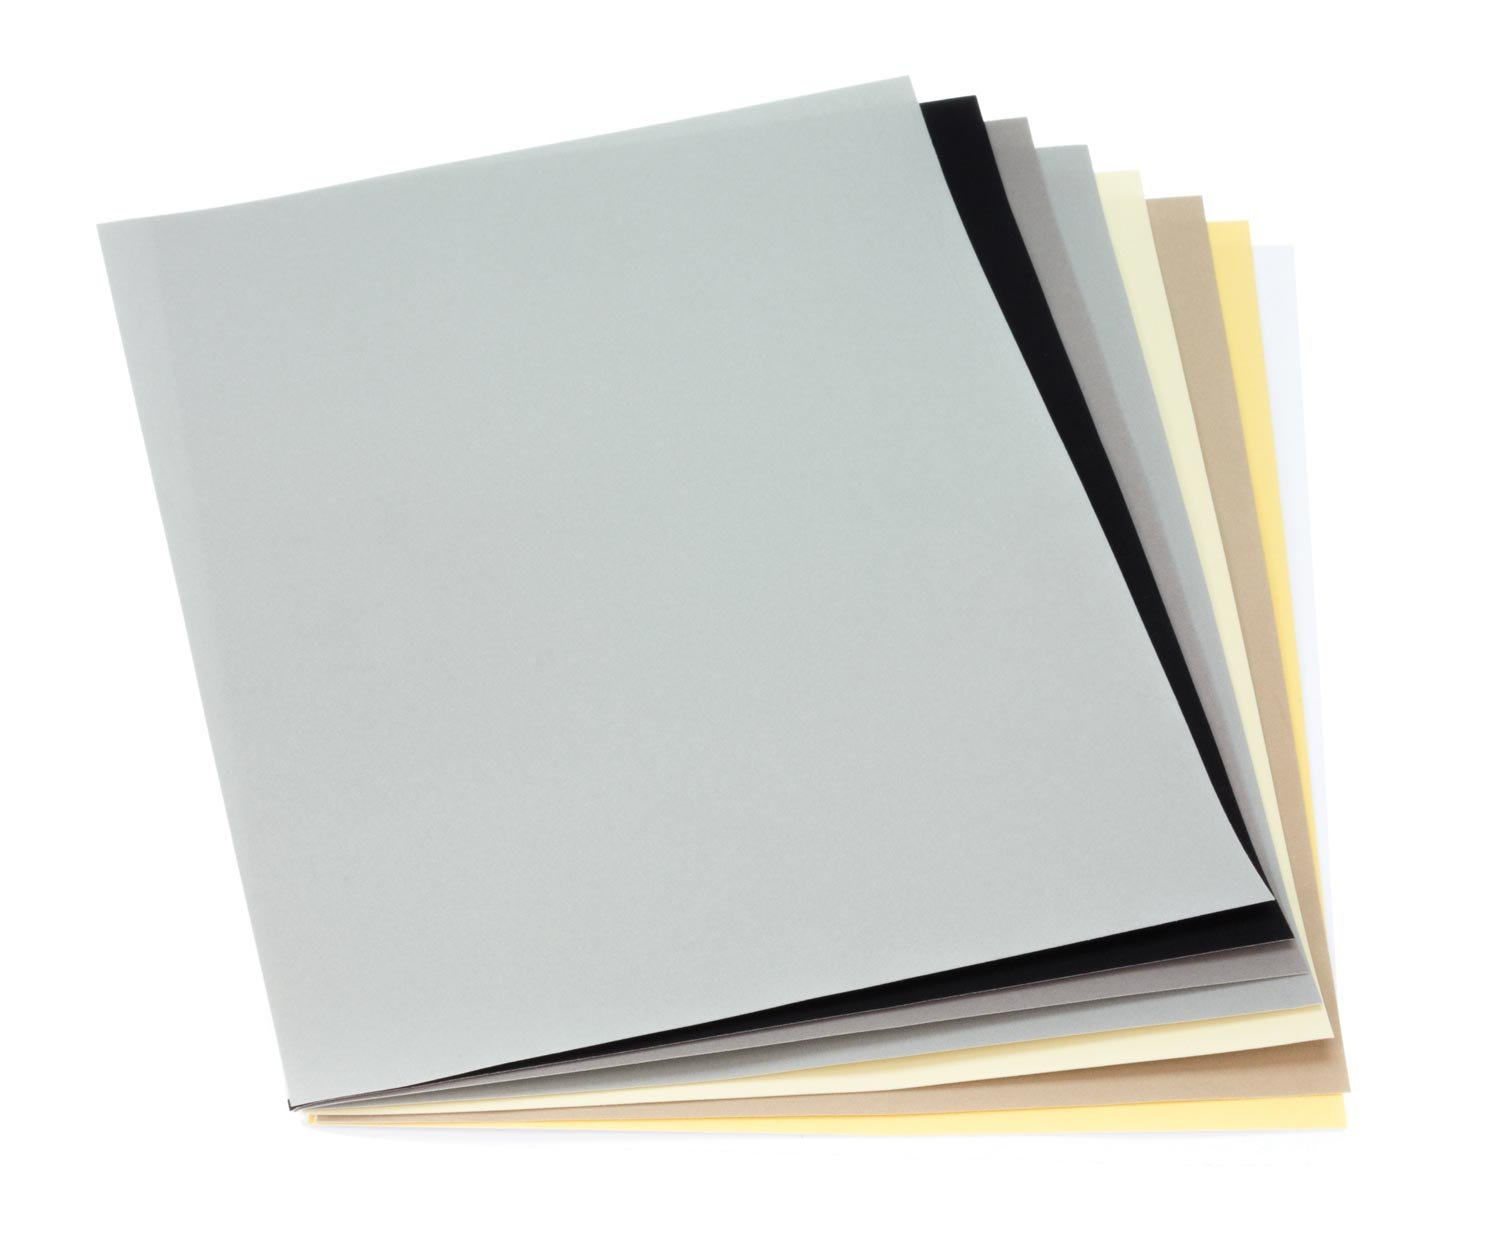 Hahnemuhle Velour Trial Pack - 8 sheets 25x35cm (9.8x13.7'') by Hahnemuhle